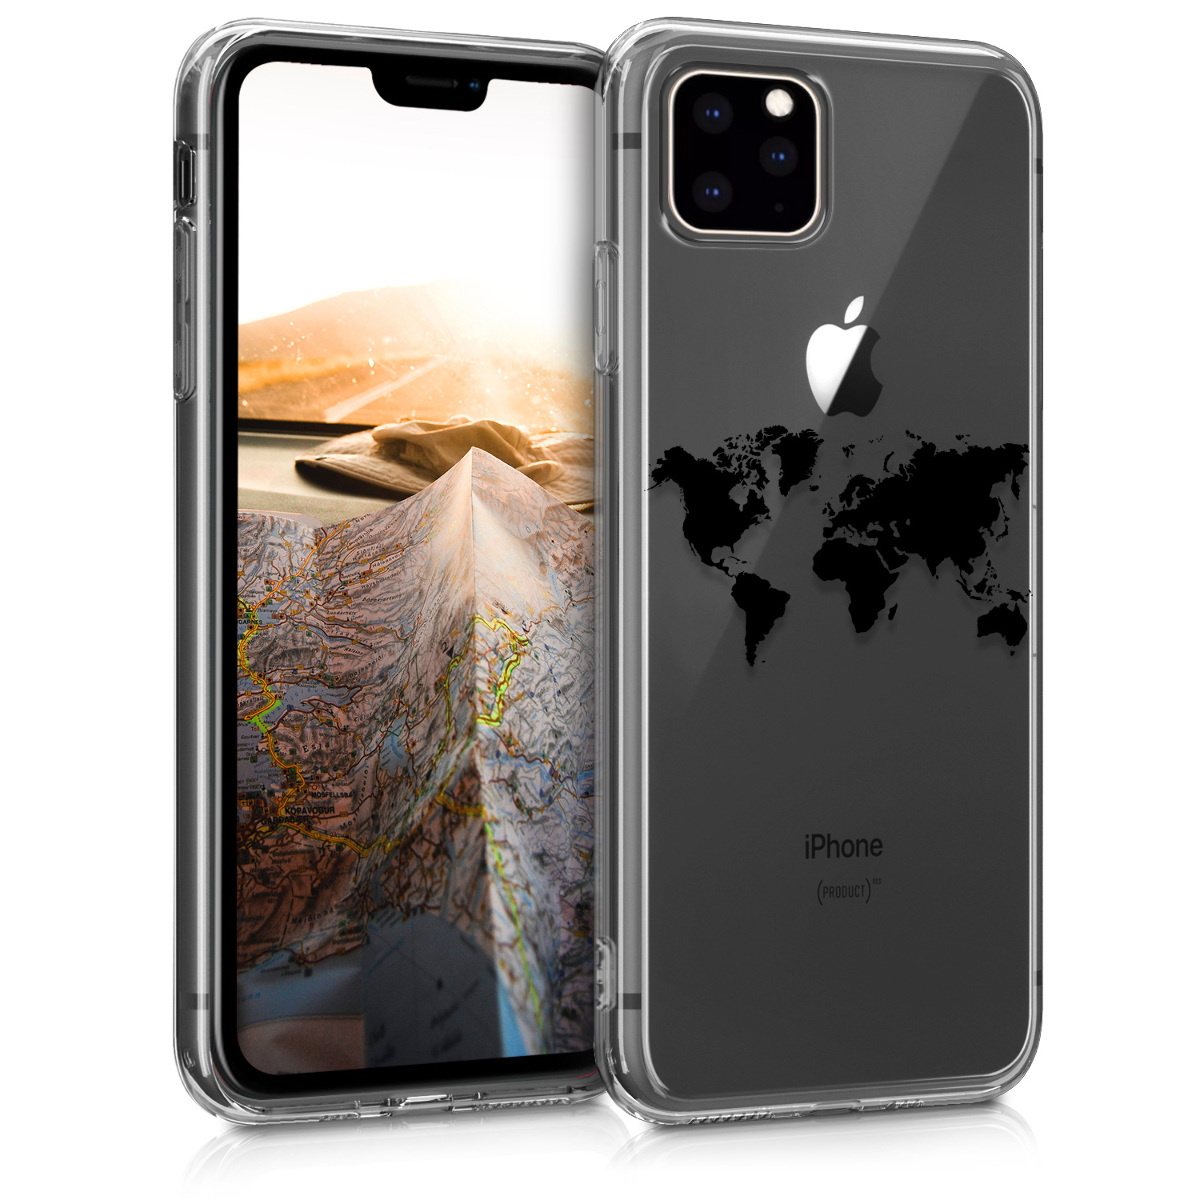 KW Θήκη Σιλικόνης iPhone 11 Pro - Black / Transparent (49792.01)